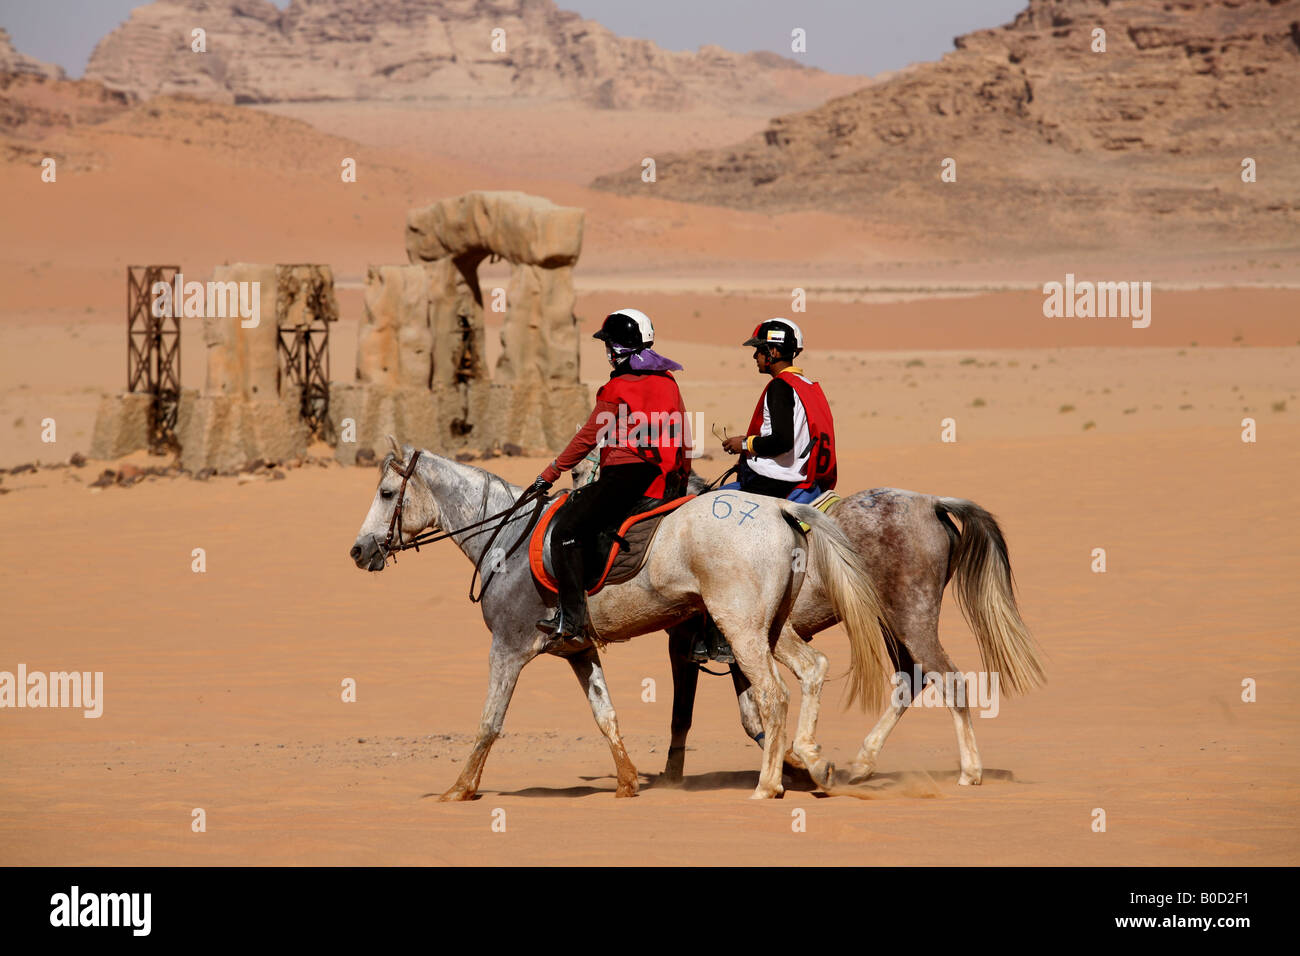 Tourists view Wadi Rum on horseback The Bedouins have lived for thousands of years in the desert around Wadi Rum - Stock Image